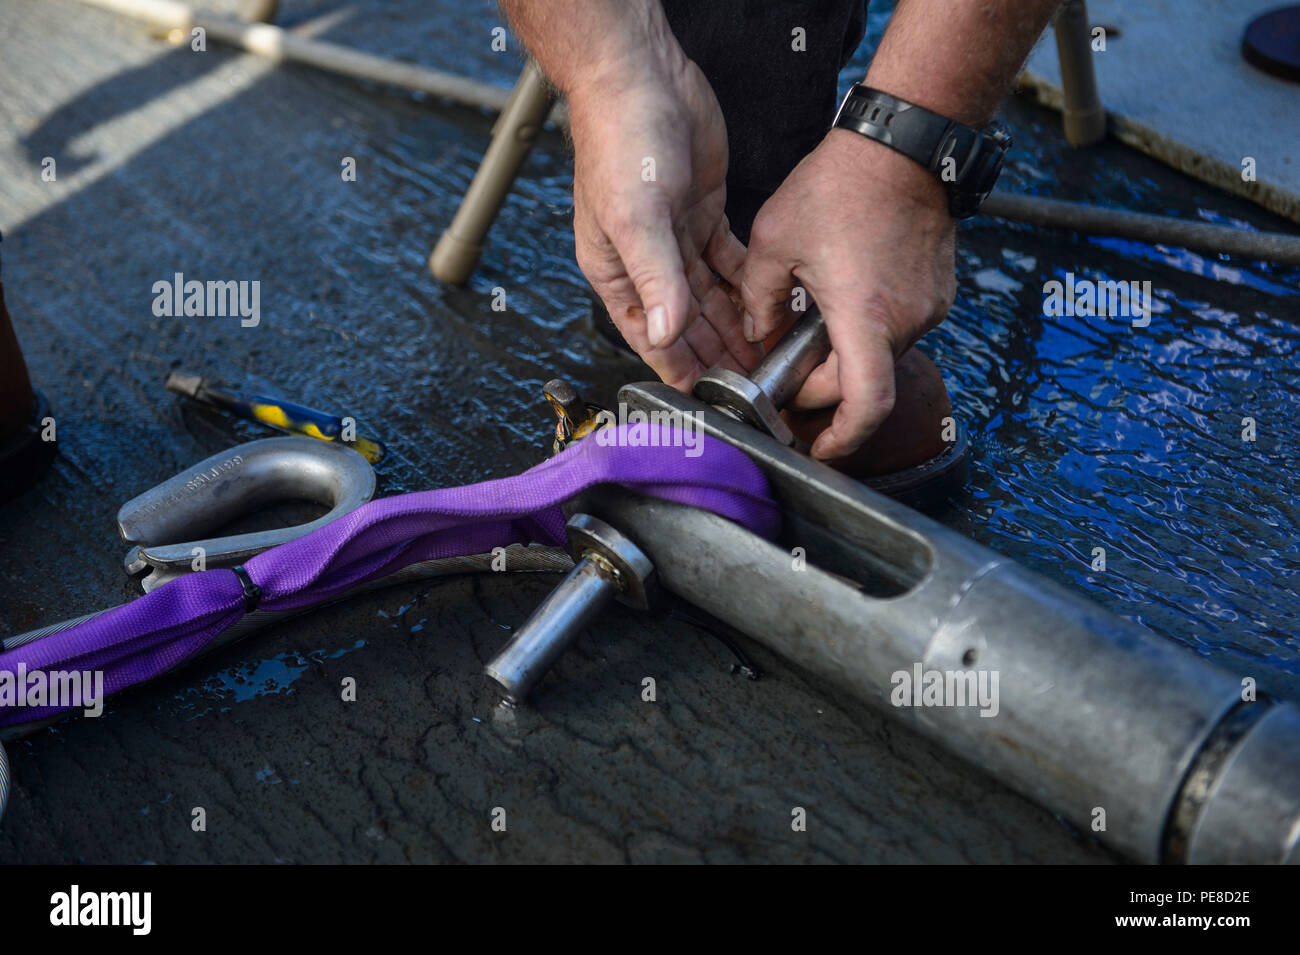 151023-N-RZ218-092   BAHAMAS (Oct. 23, 2015) A contractor with Phoenix International Incorporated, prepare a tow pinger locater 25 (TPL 25) for the upcoming salvage mission aboard USNS Apache (T-ATF 172). USNS Apache departed Norfolk, Va., Oct. 19, to begin searching for wreckage from the missing U.S. Flagged merchant vessel El Faro. The ship is equipped with several pieces of underwater search equipment, including a voyage data recorder locator, side-scan sonar and an underwater remote operated vehicle. The Navy's mission will be to first locate the ship and, if possible, to retrieve the voya - Stock Image